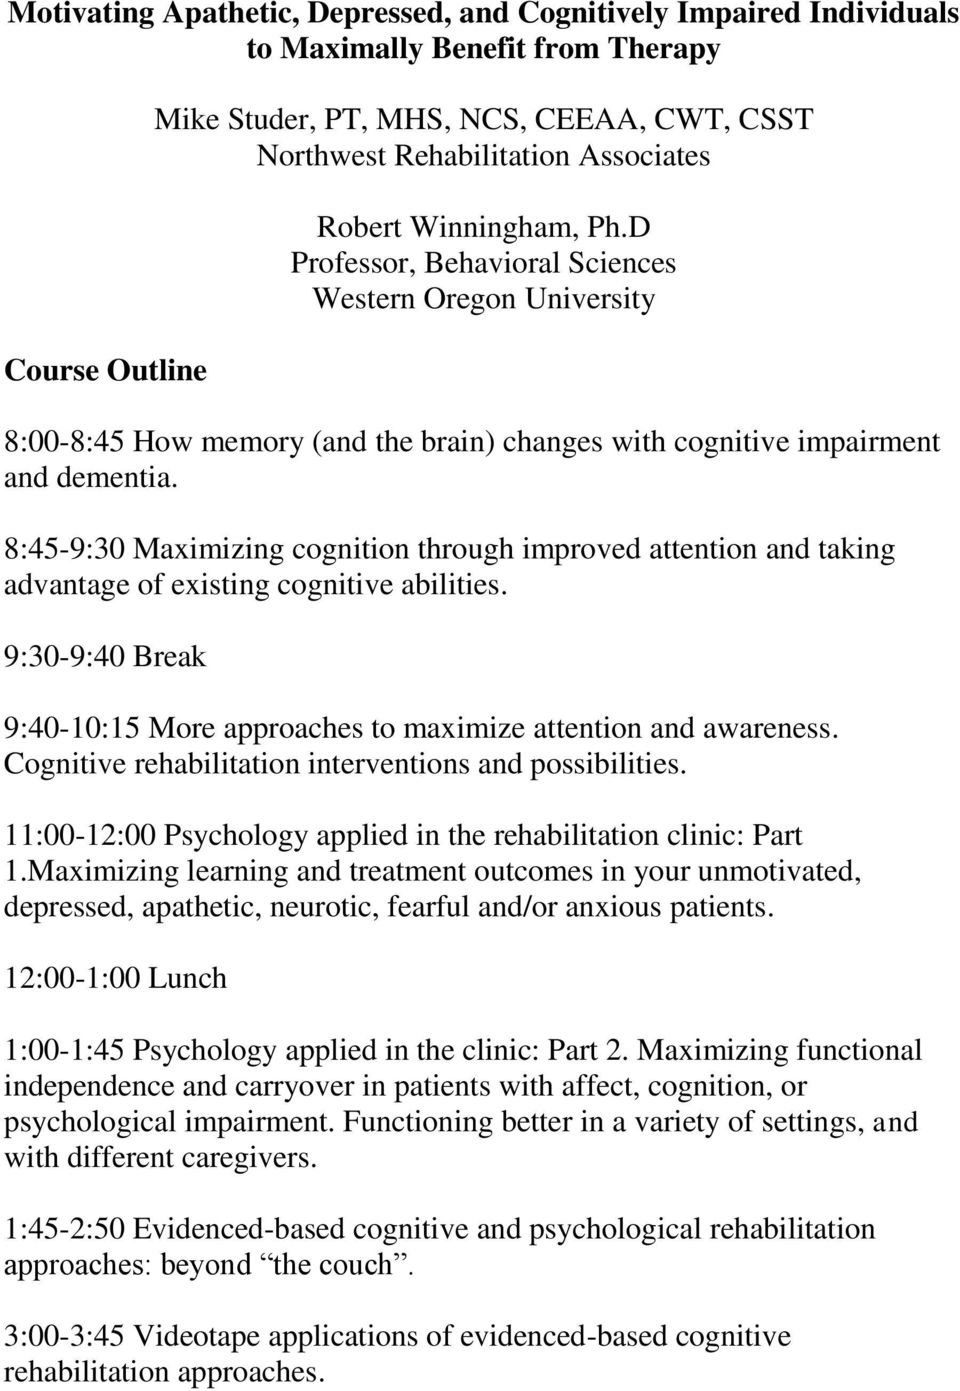 8:45-9:30 Maximizing cognition through improved attention and taking advantage of existing cognitive abilities. 9:30-9:40 Break 9:40-10:15 More approaches to maximize attention and awareness.